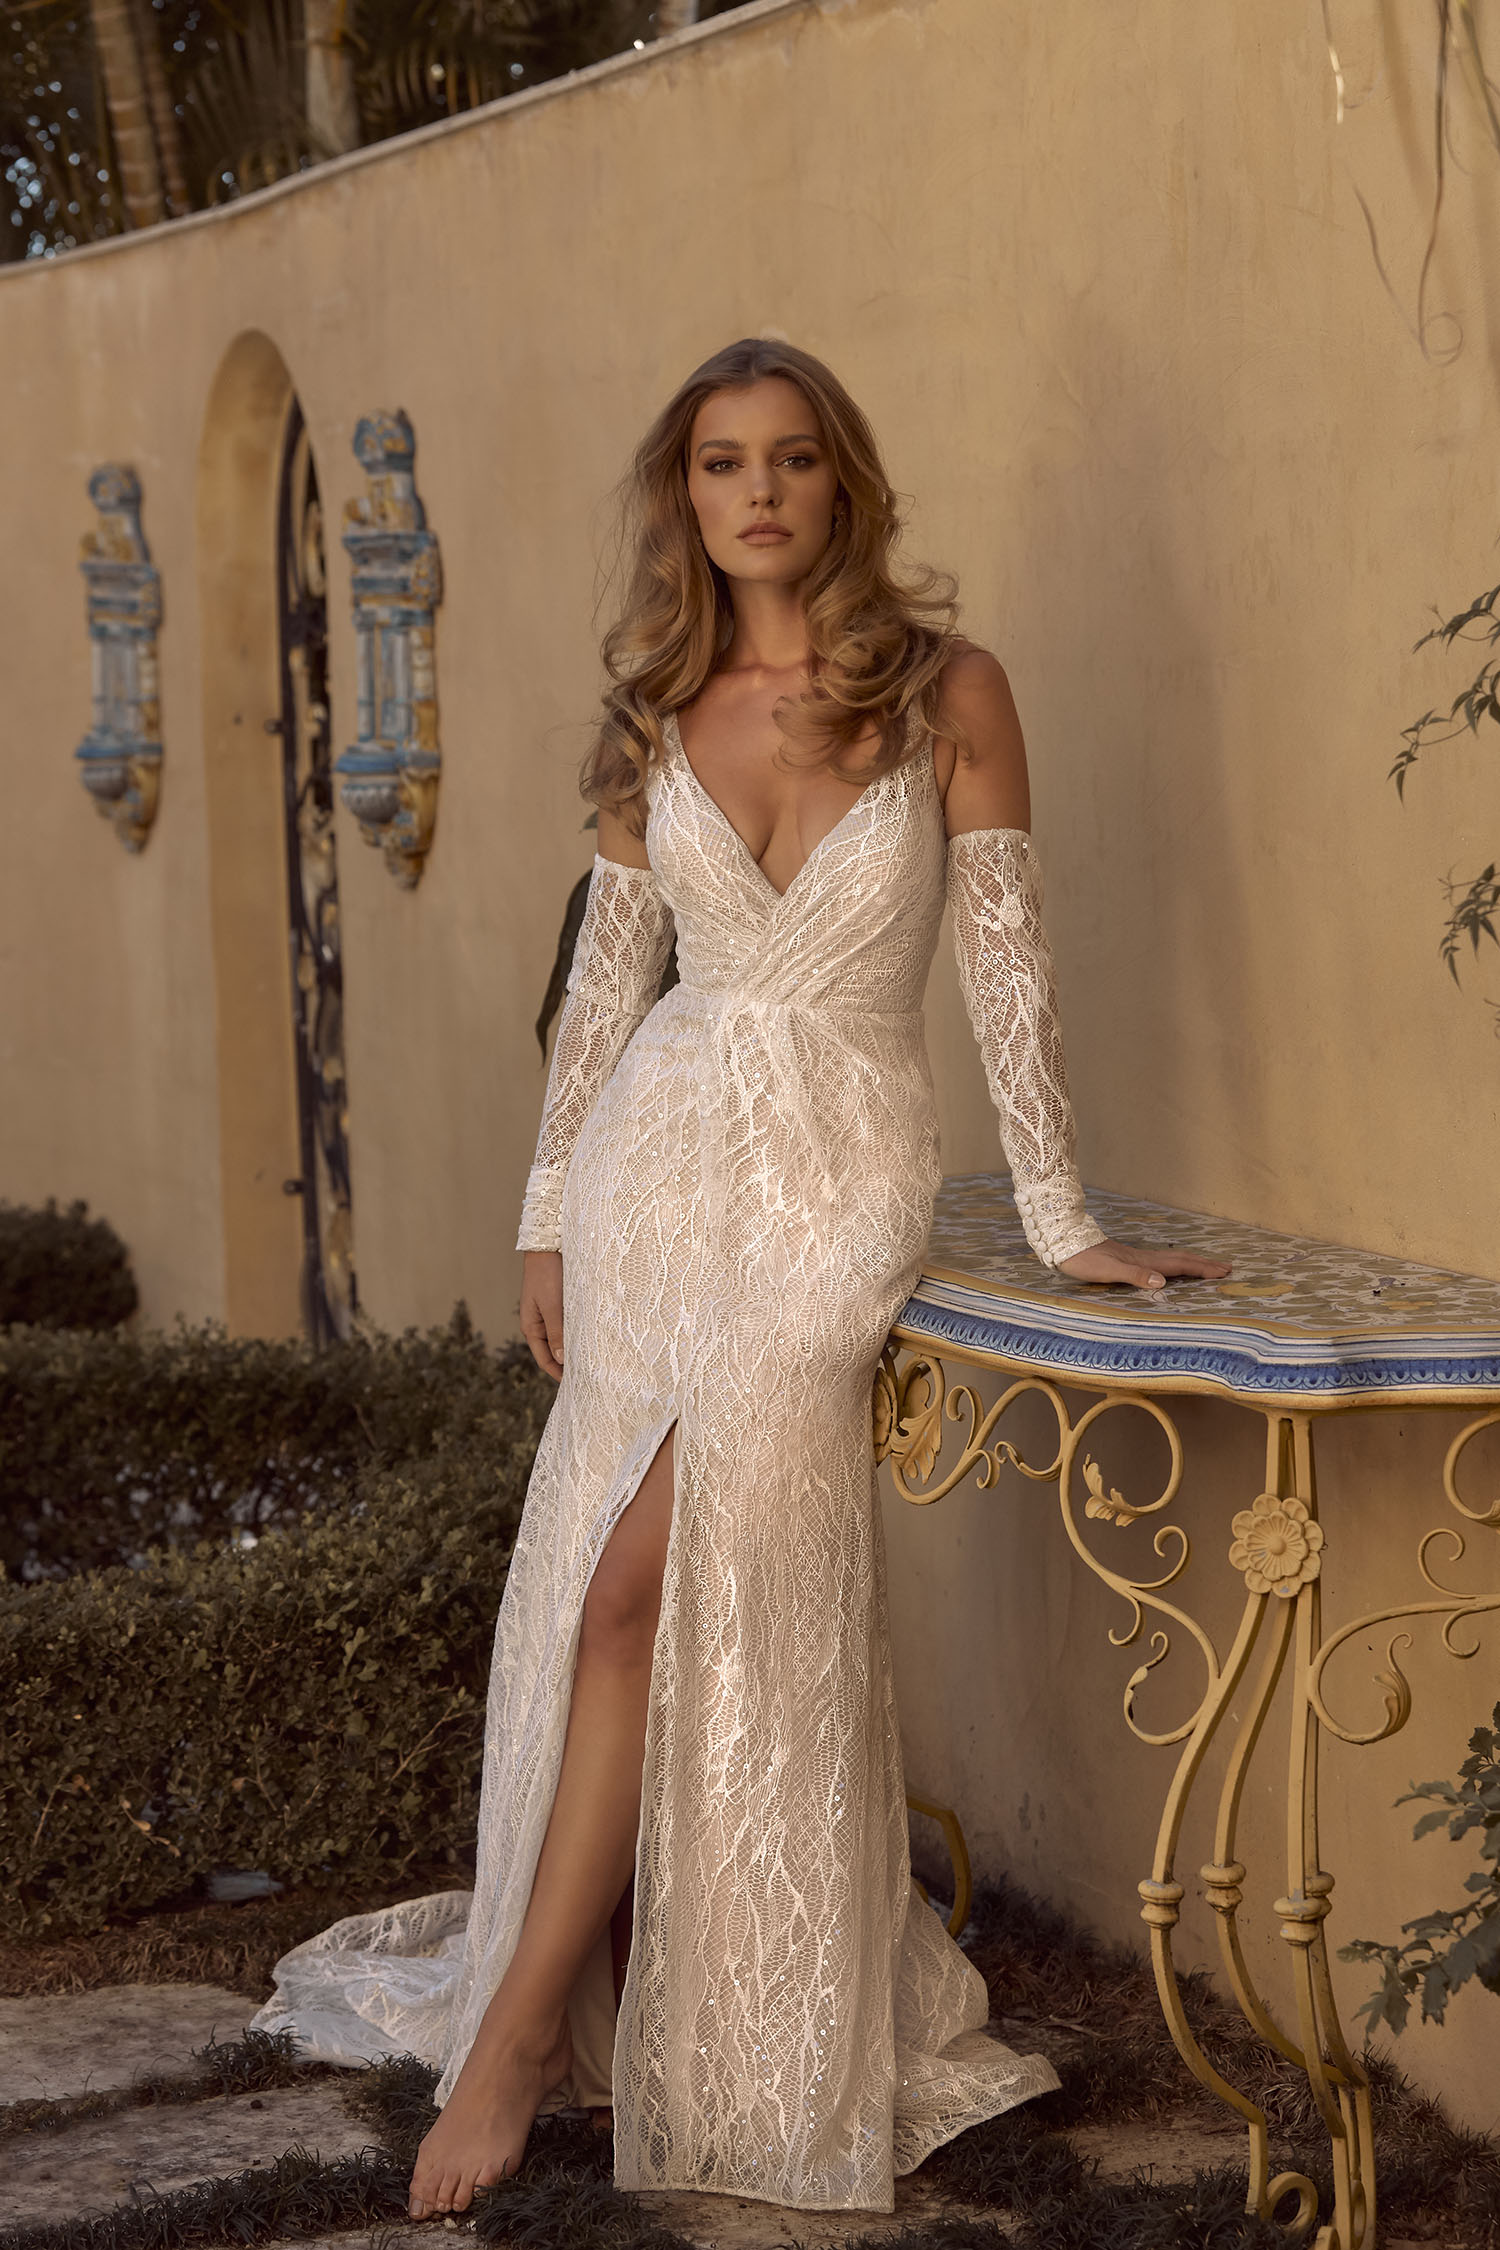 BILLIE ML19299 FULL LENGTH FIT AND FLARE SILHOUETTE V-NECKLINE WITH LACE SEQUINS SPARKLE DETACHABLE FITTED SLEEVES AND DEEP V ZIP CLOSURE FINISH WEDDING DRESS MADI LANE BRIDAL2